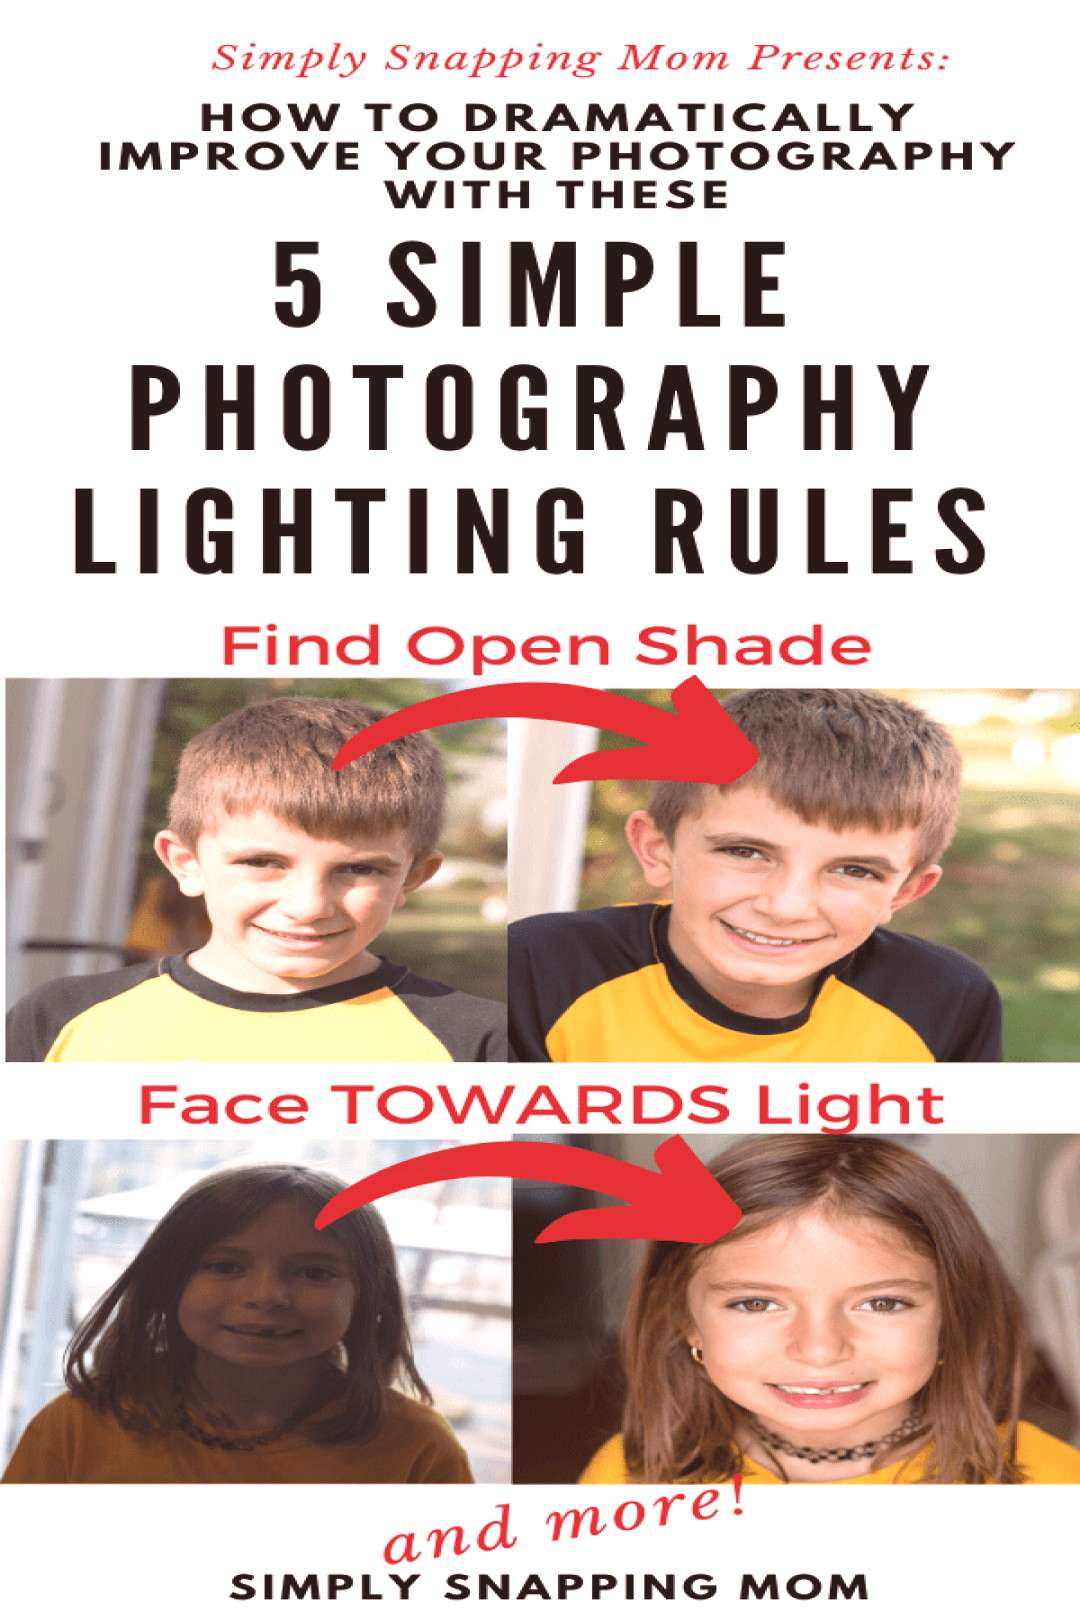 Dramatically transform your photography by following these 5 simply lighting rules, whether you are